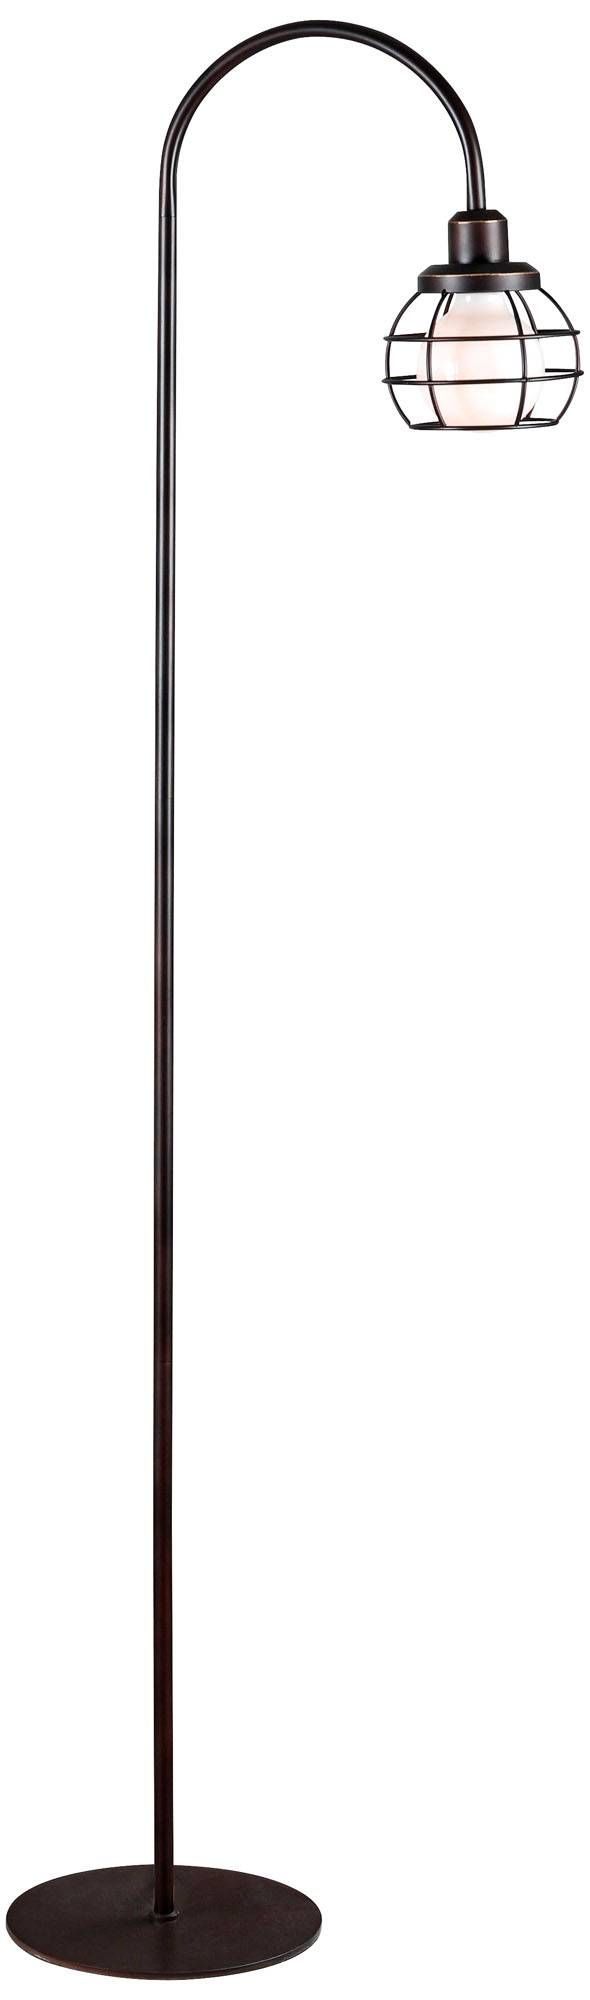 Kenroy Home Caged Oil Rubbed Bronze Floor Lamp - #1X462 | Lamps Plus